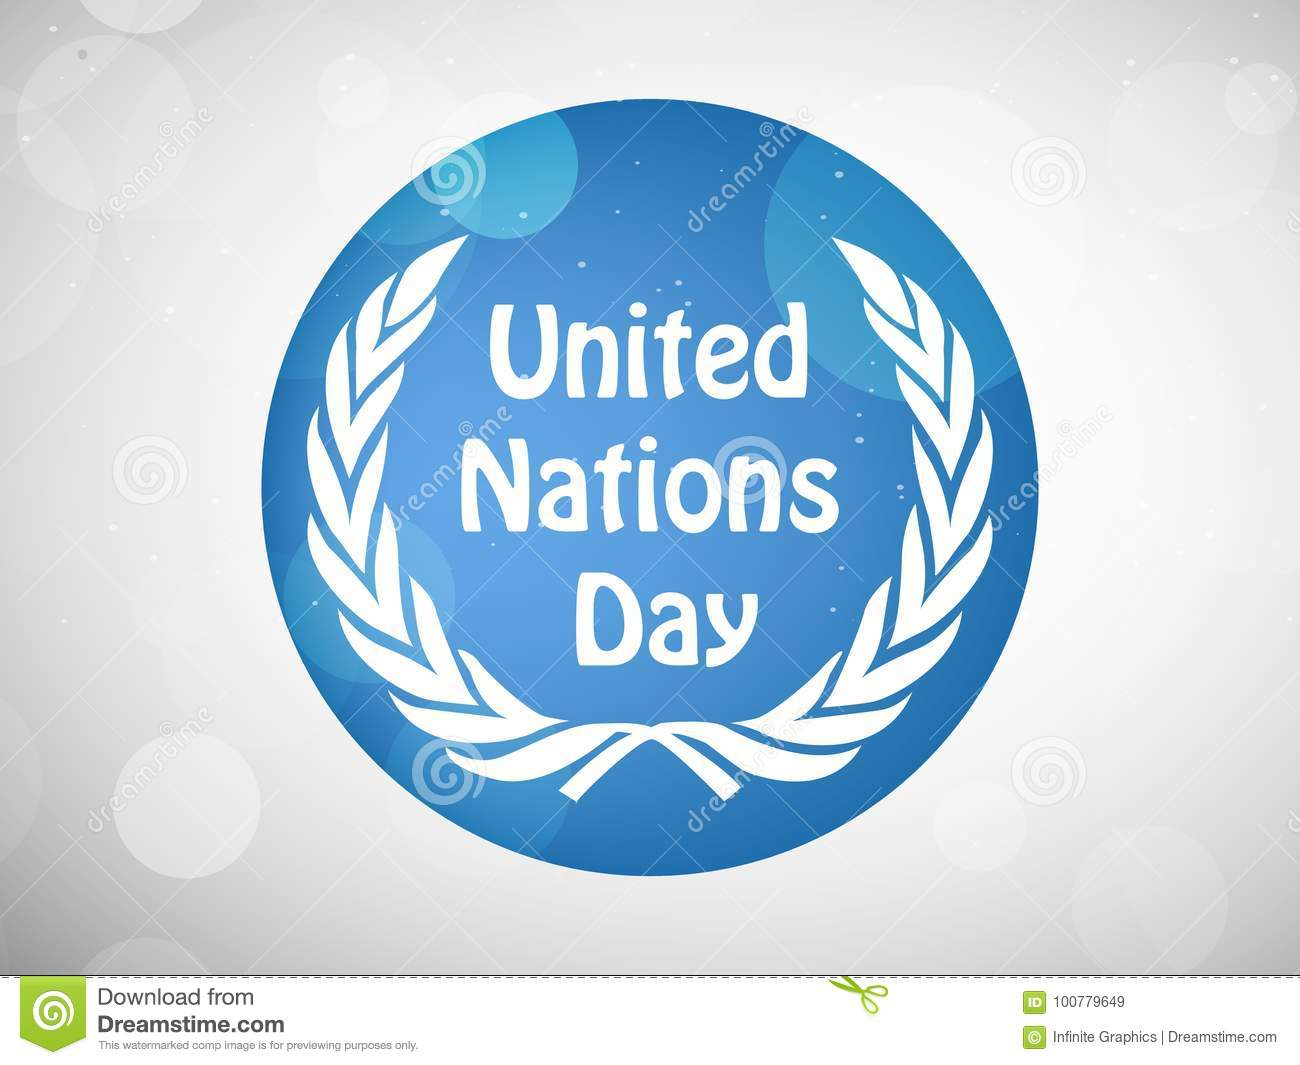 Illustration of United Nations Day Background